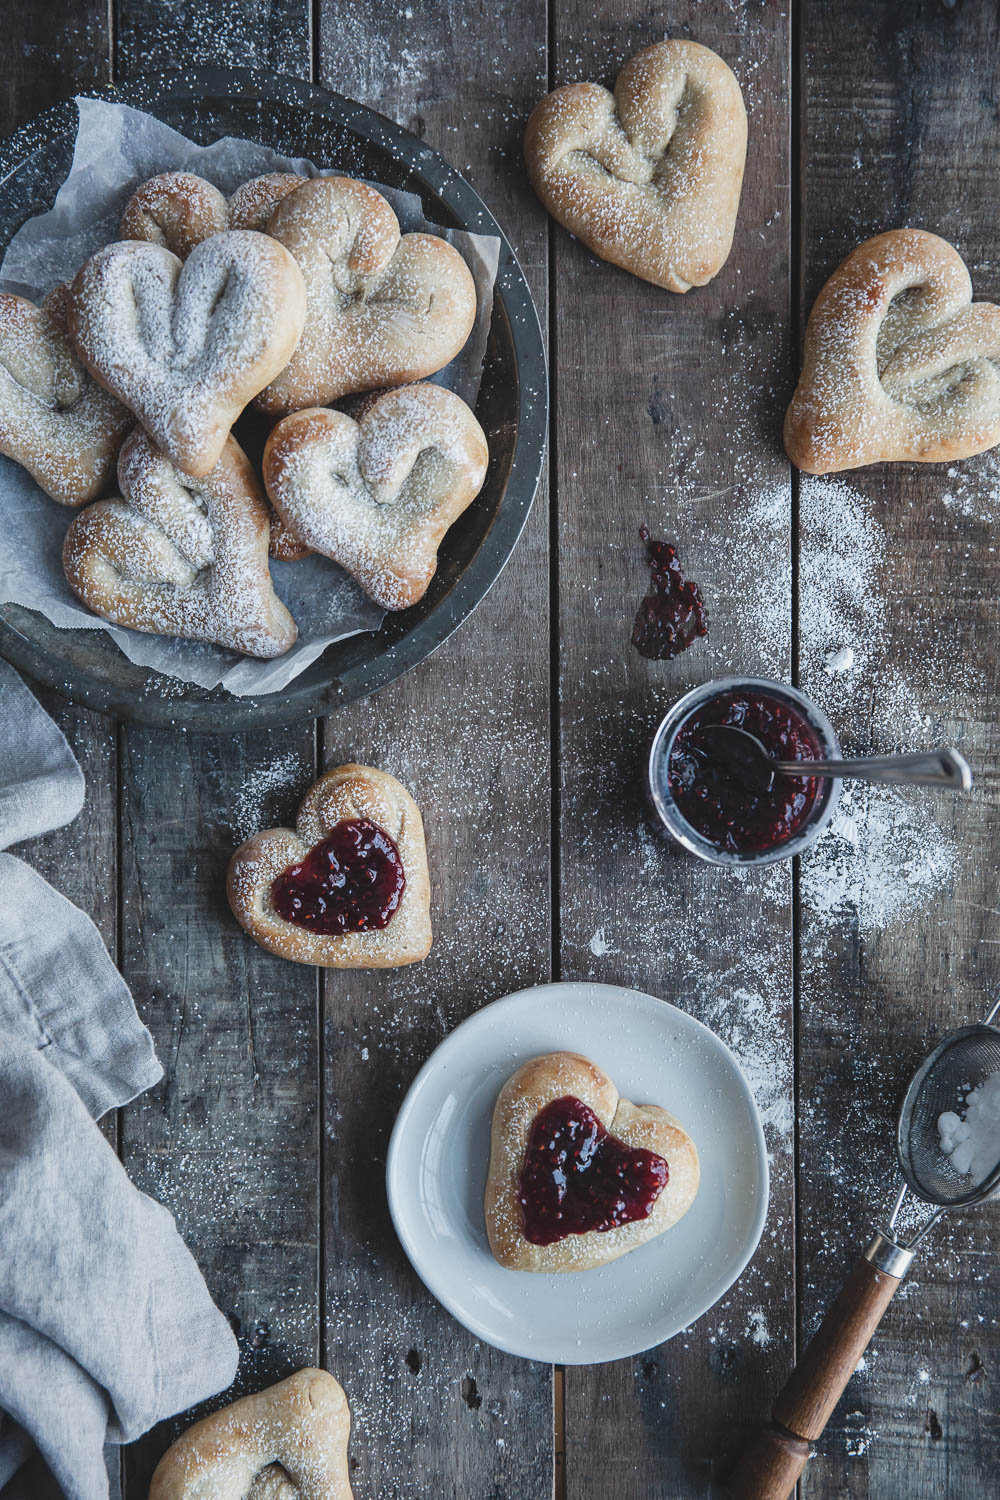 Heart-shaped cardamom buns for a Valentine's Day treat